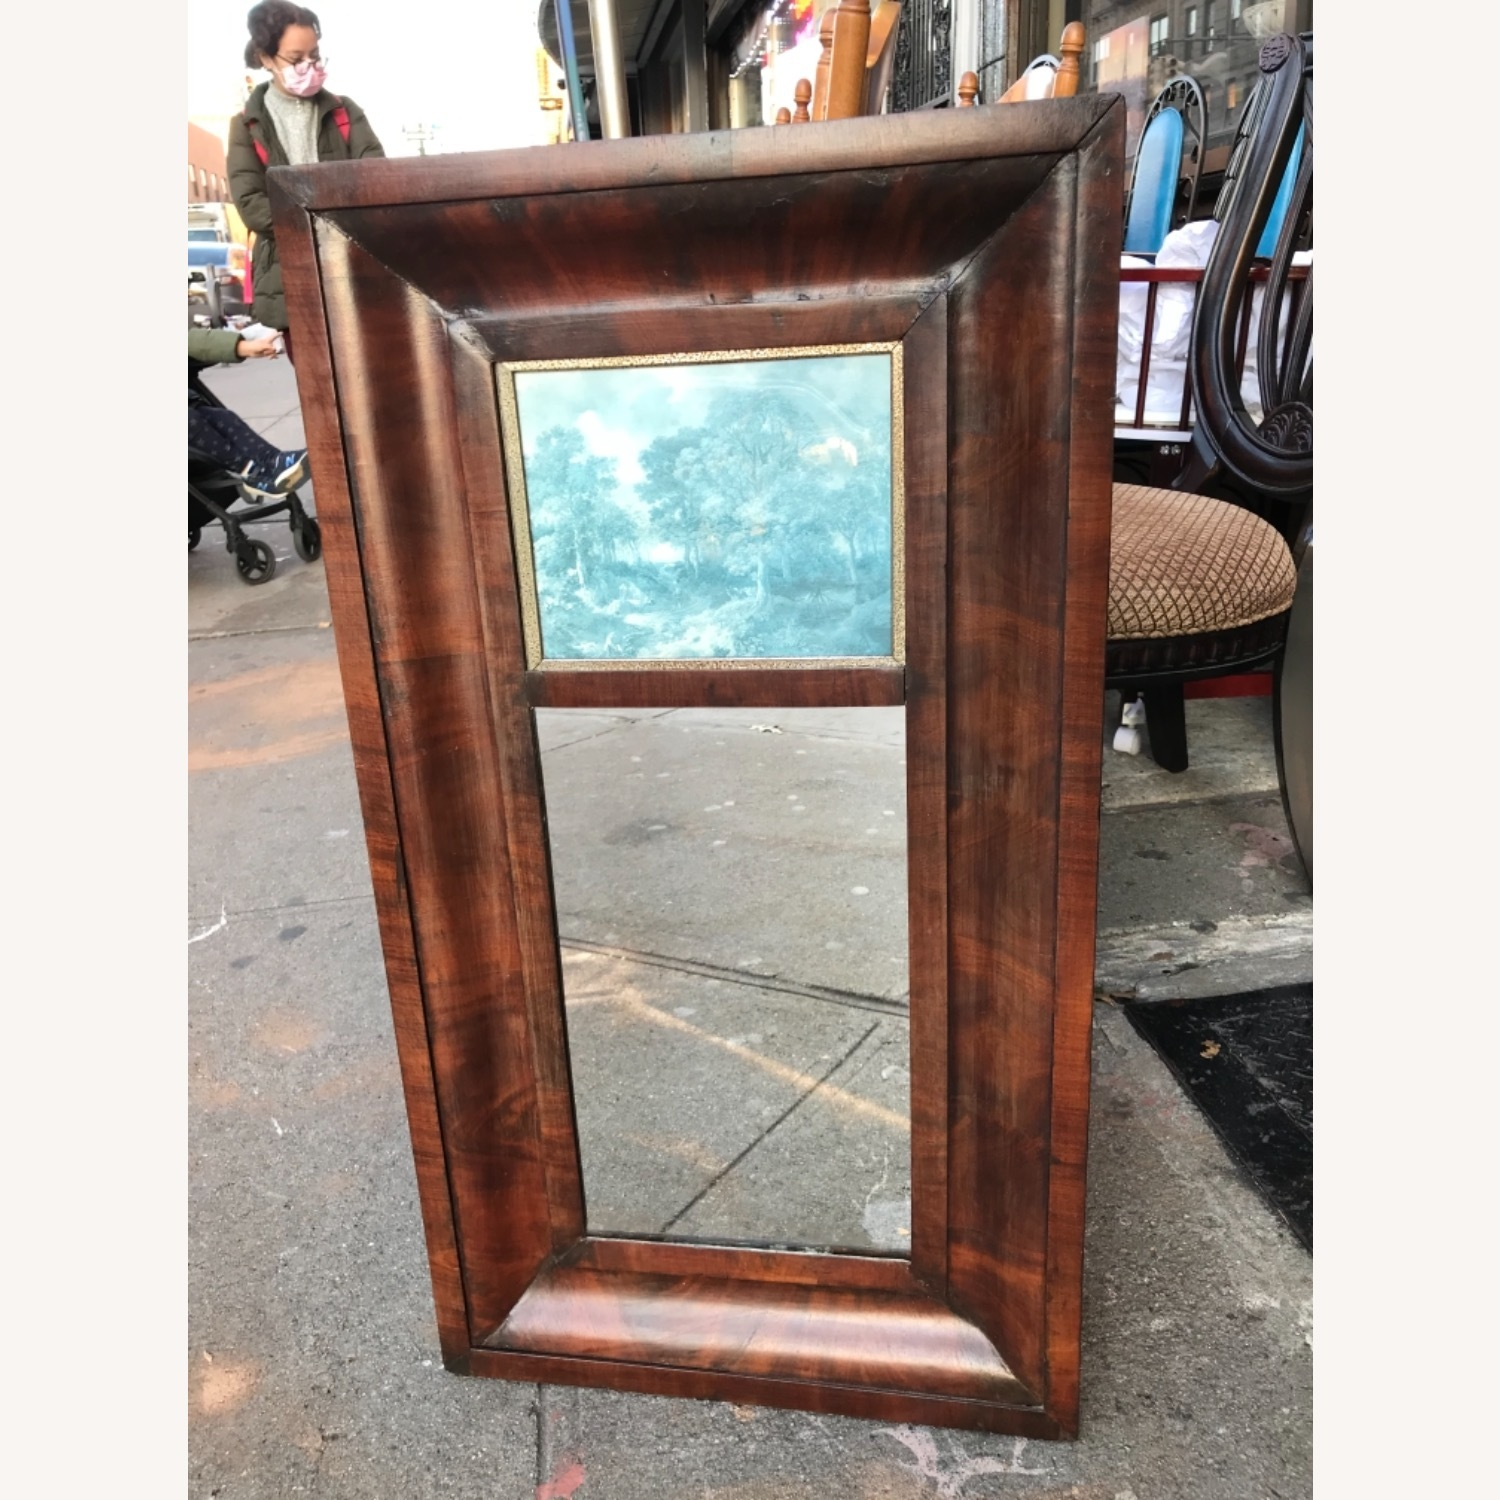 Antique 1900s Mahogany Framed Mirror w/ Picture - image-17